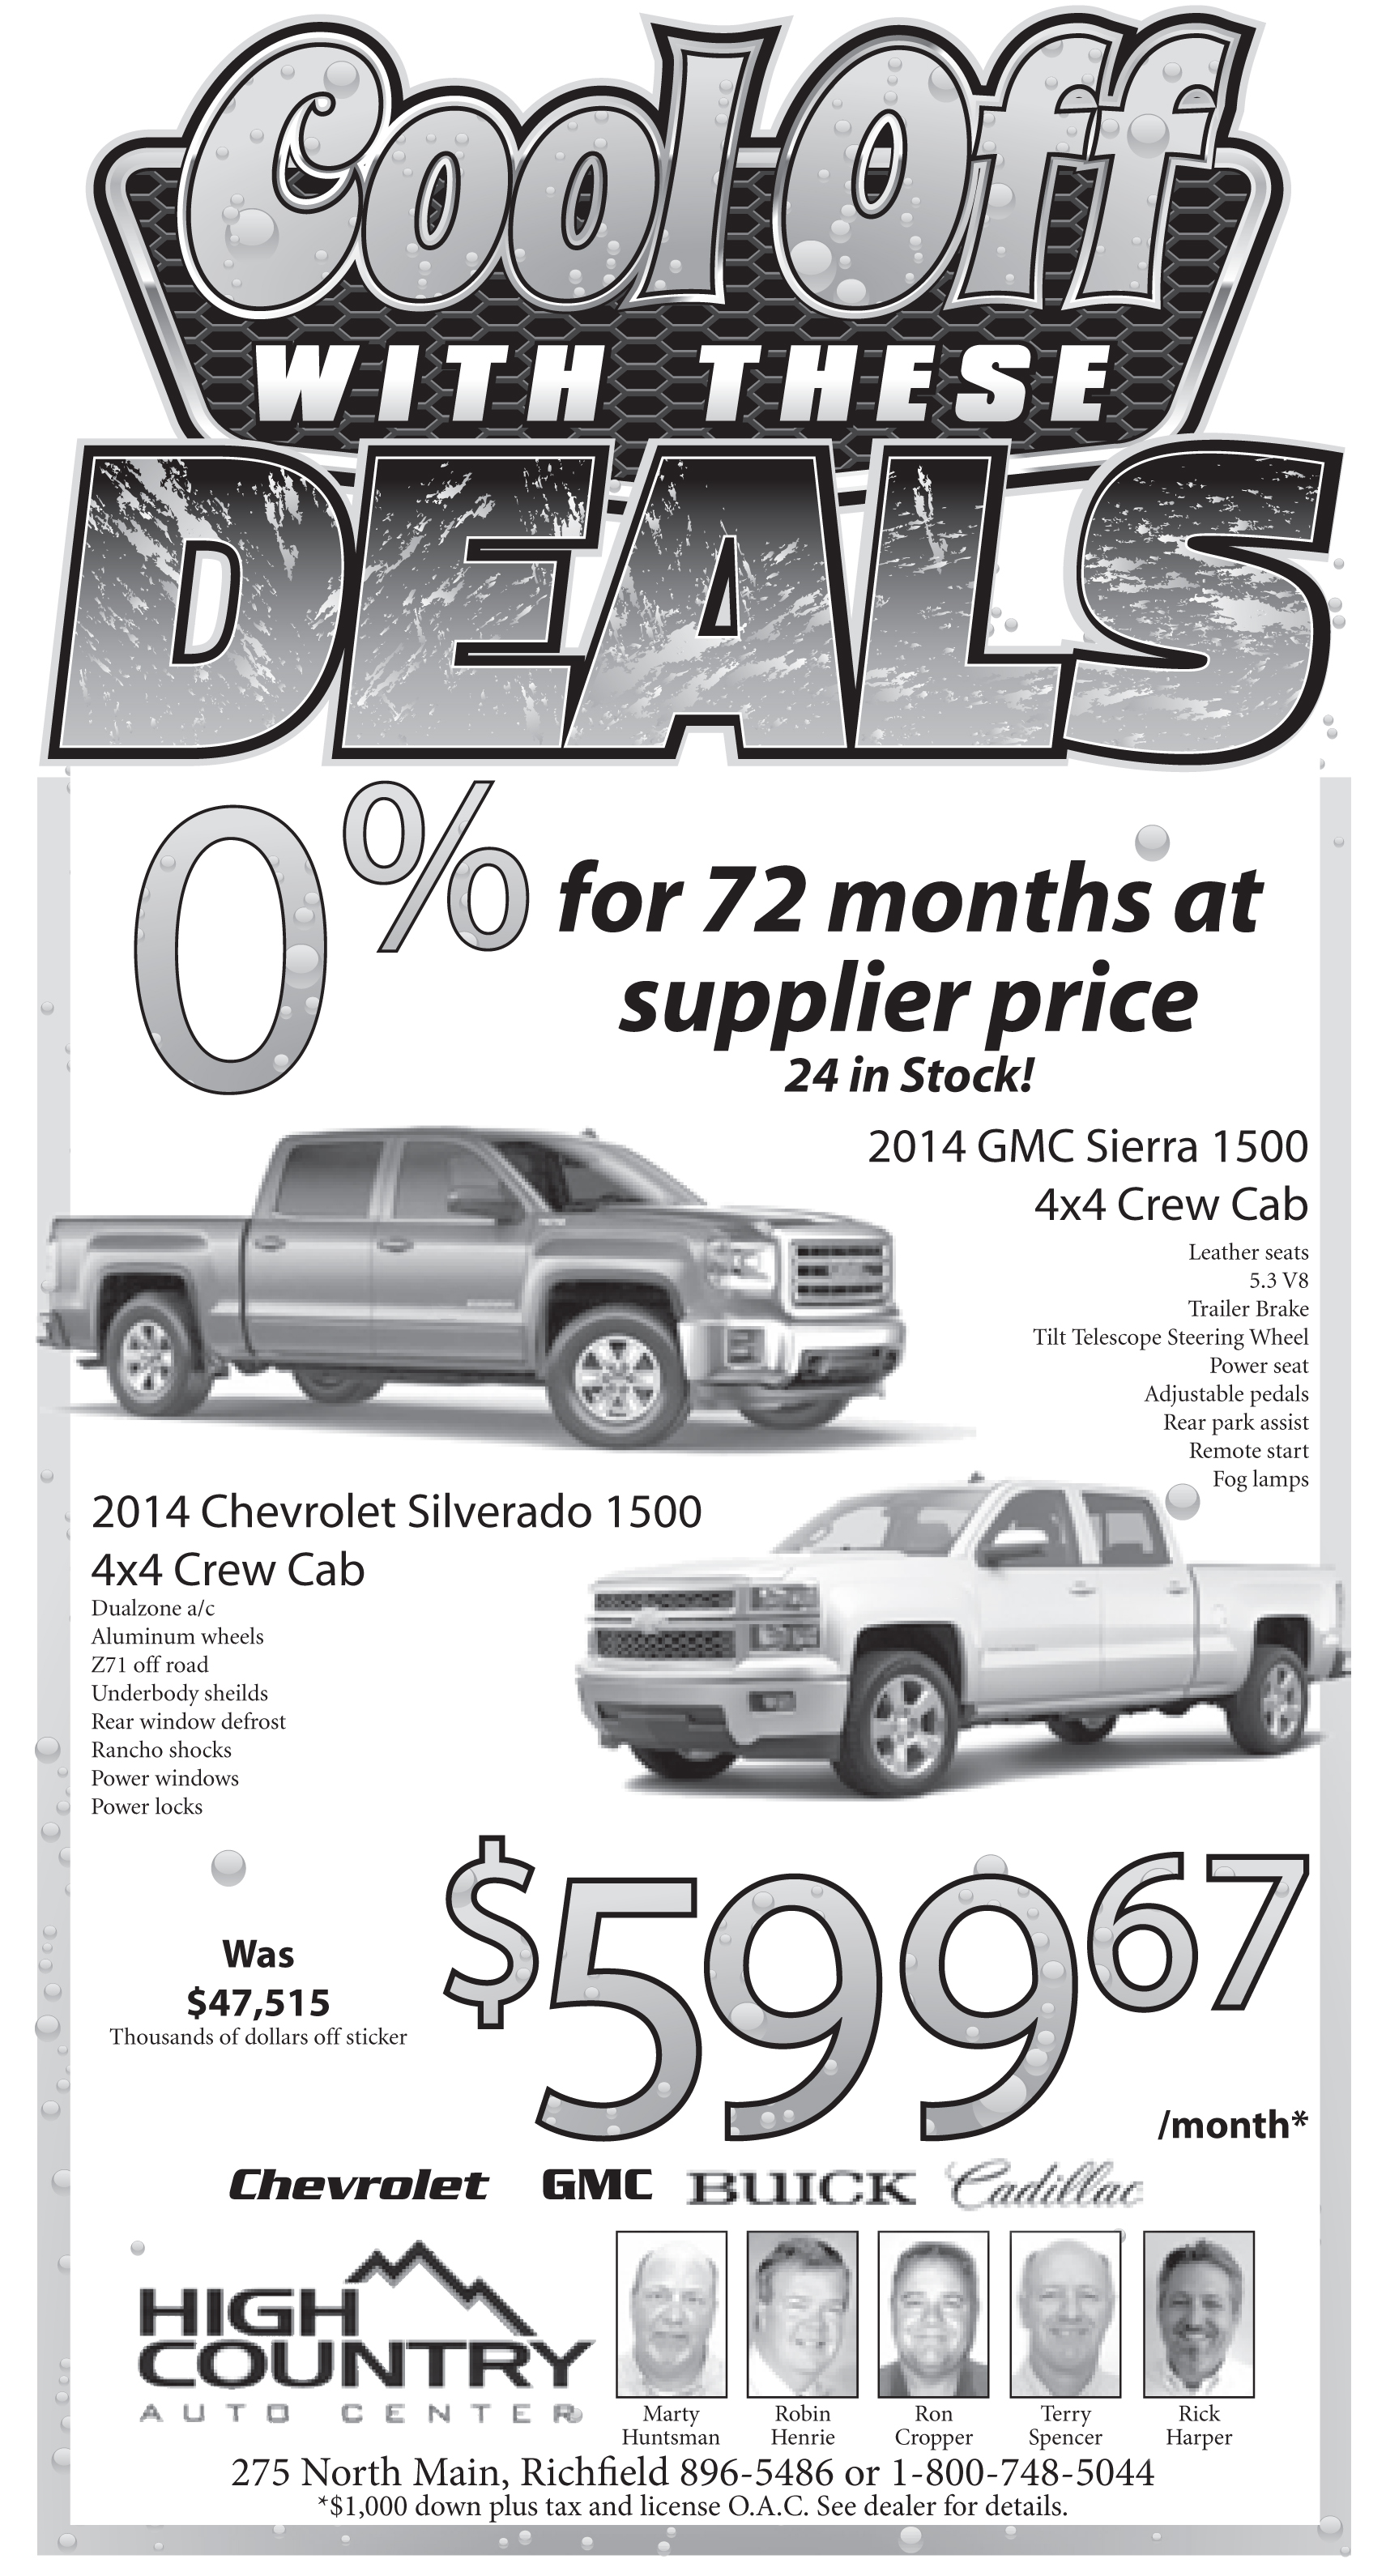 Advertisement design by Graphic Designer Dallas Price for High Country Auto. Published in The Richfield Reaper 08/17/2014.